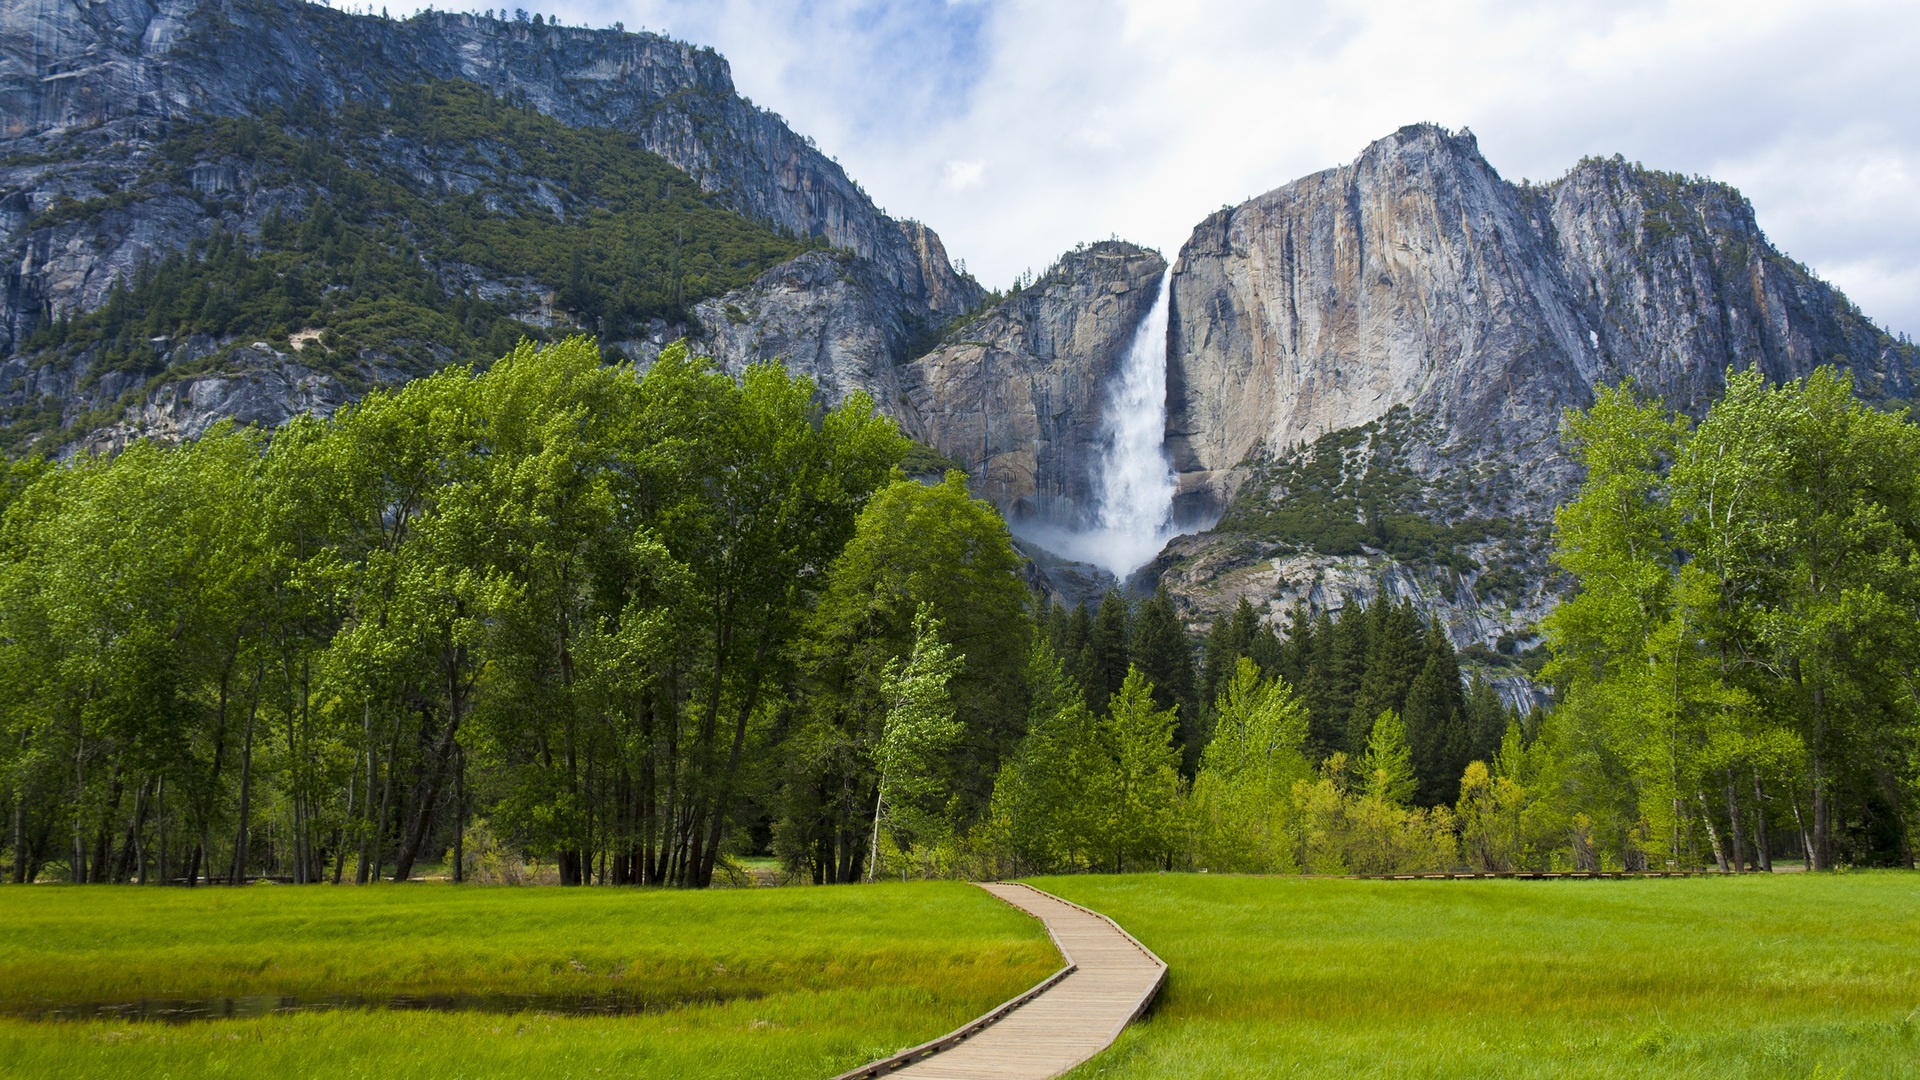 Hd wallpaper yosemite - Hd Wallpaper Yosemite 35